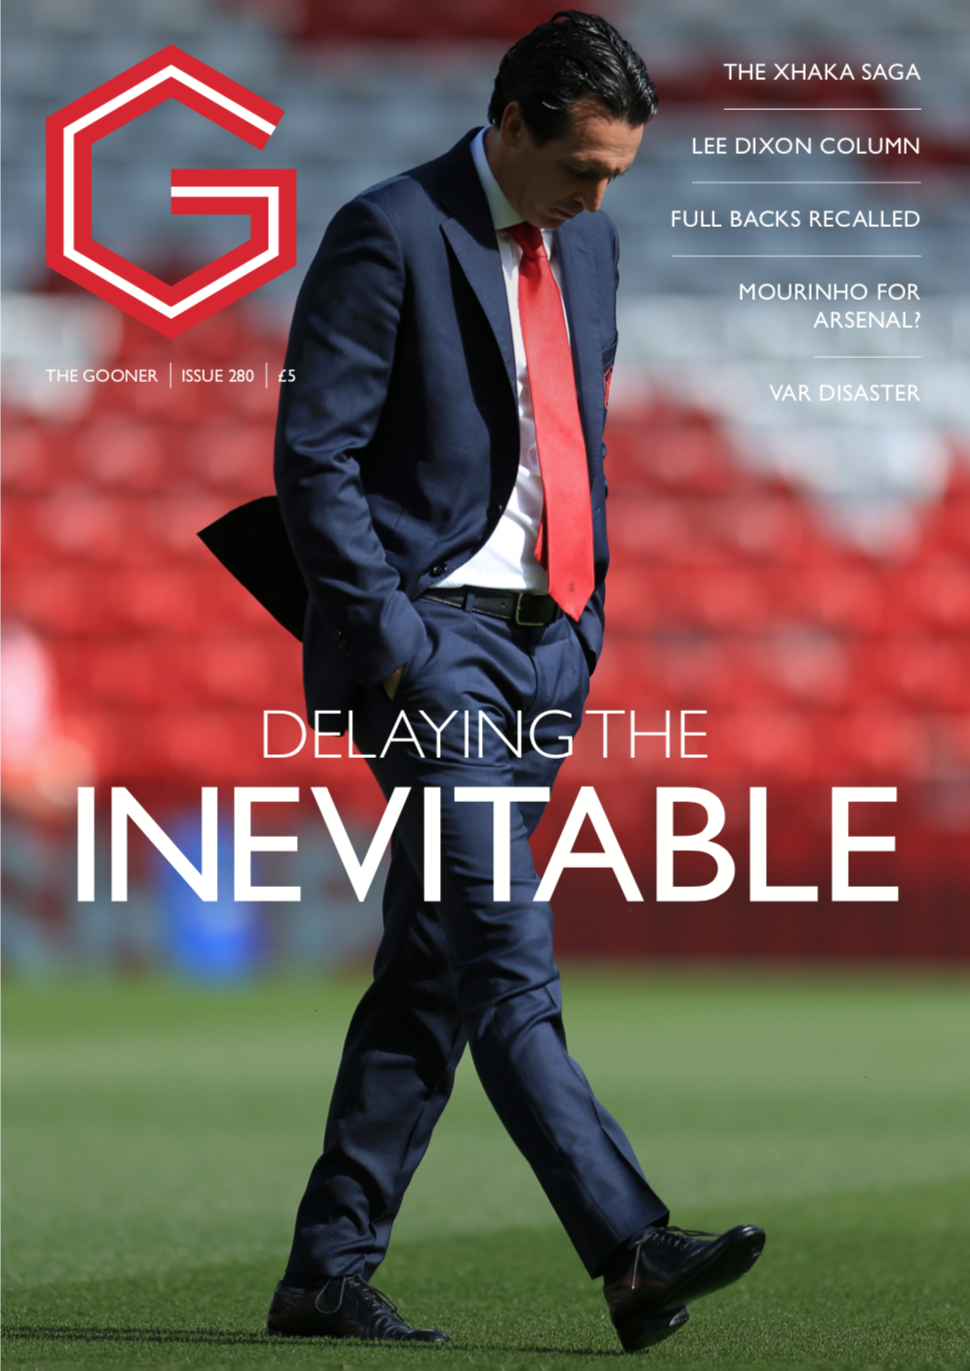 Gooner Issue 280 - Front Cover